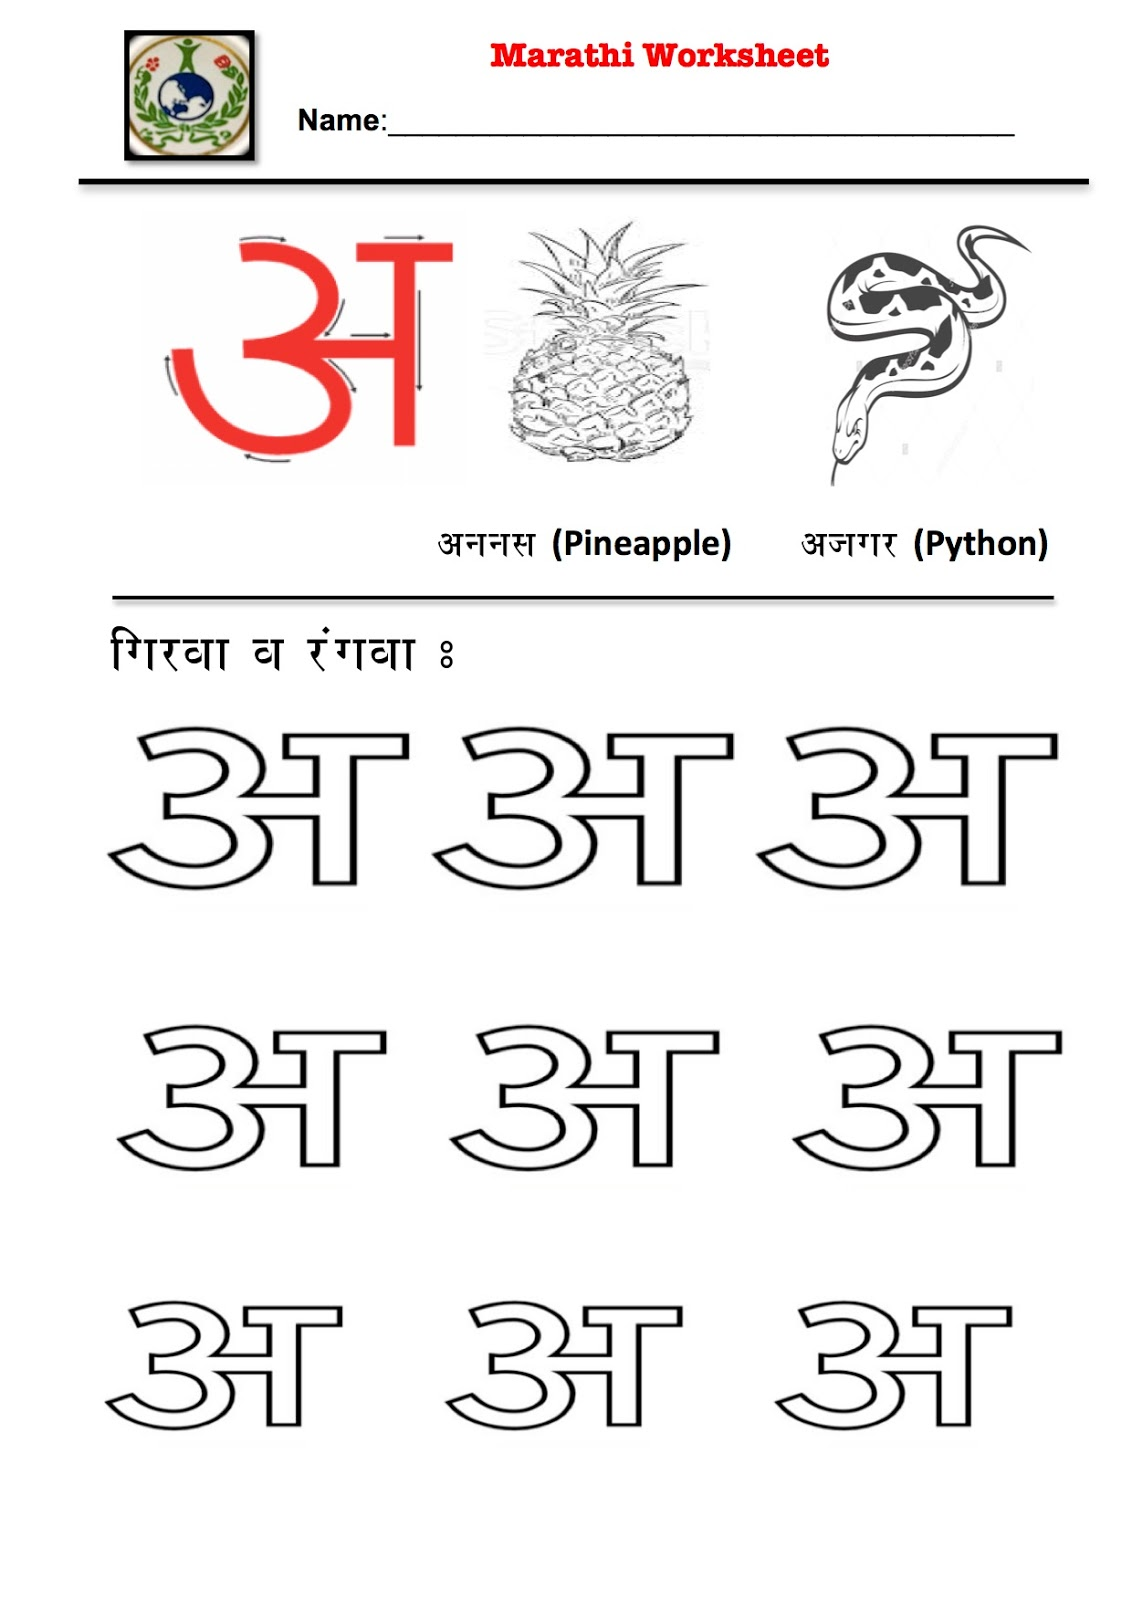 Marathi Worksheet